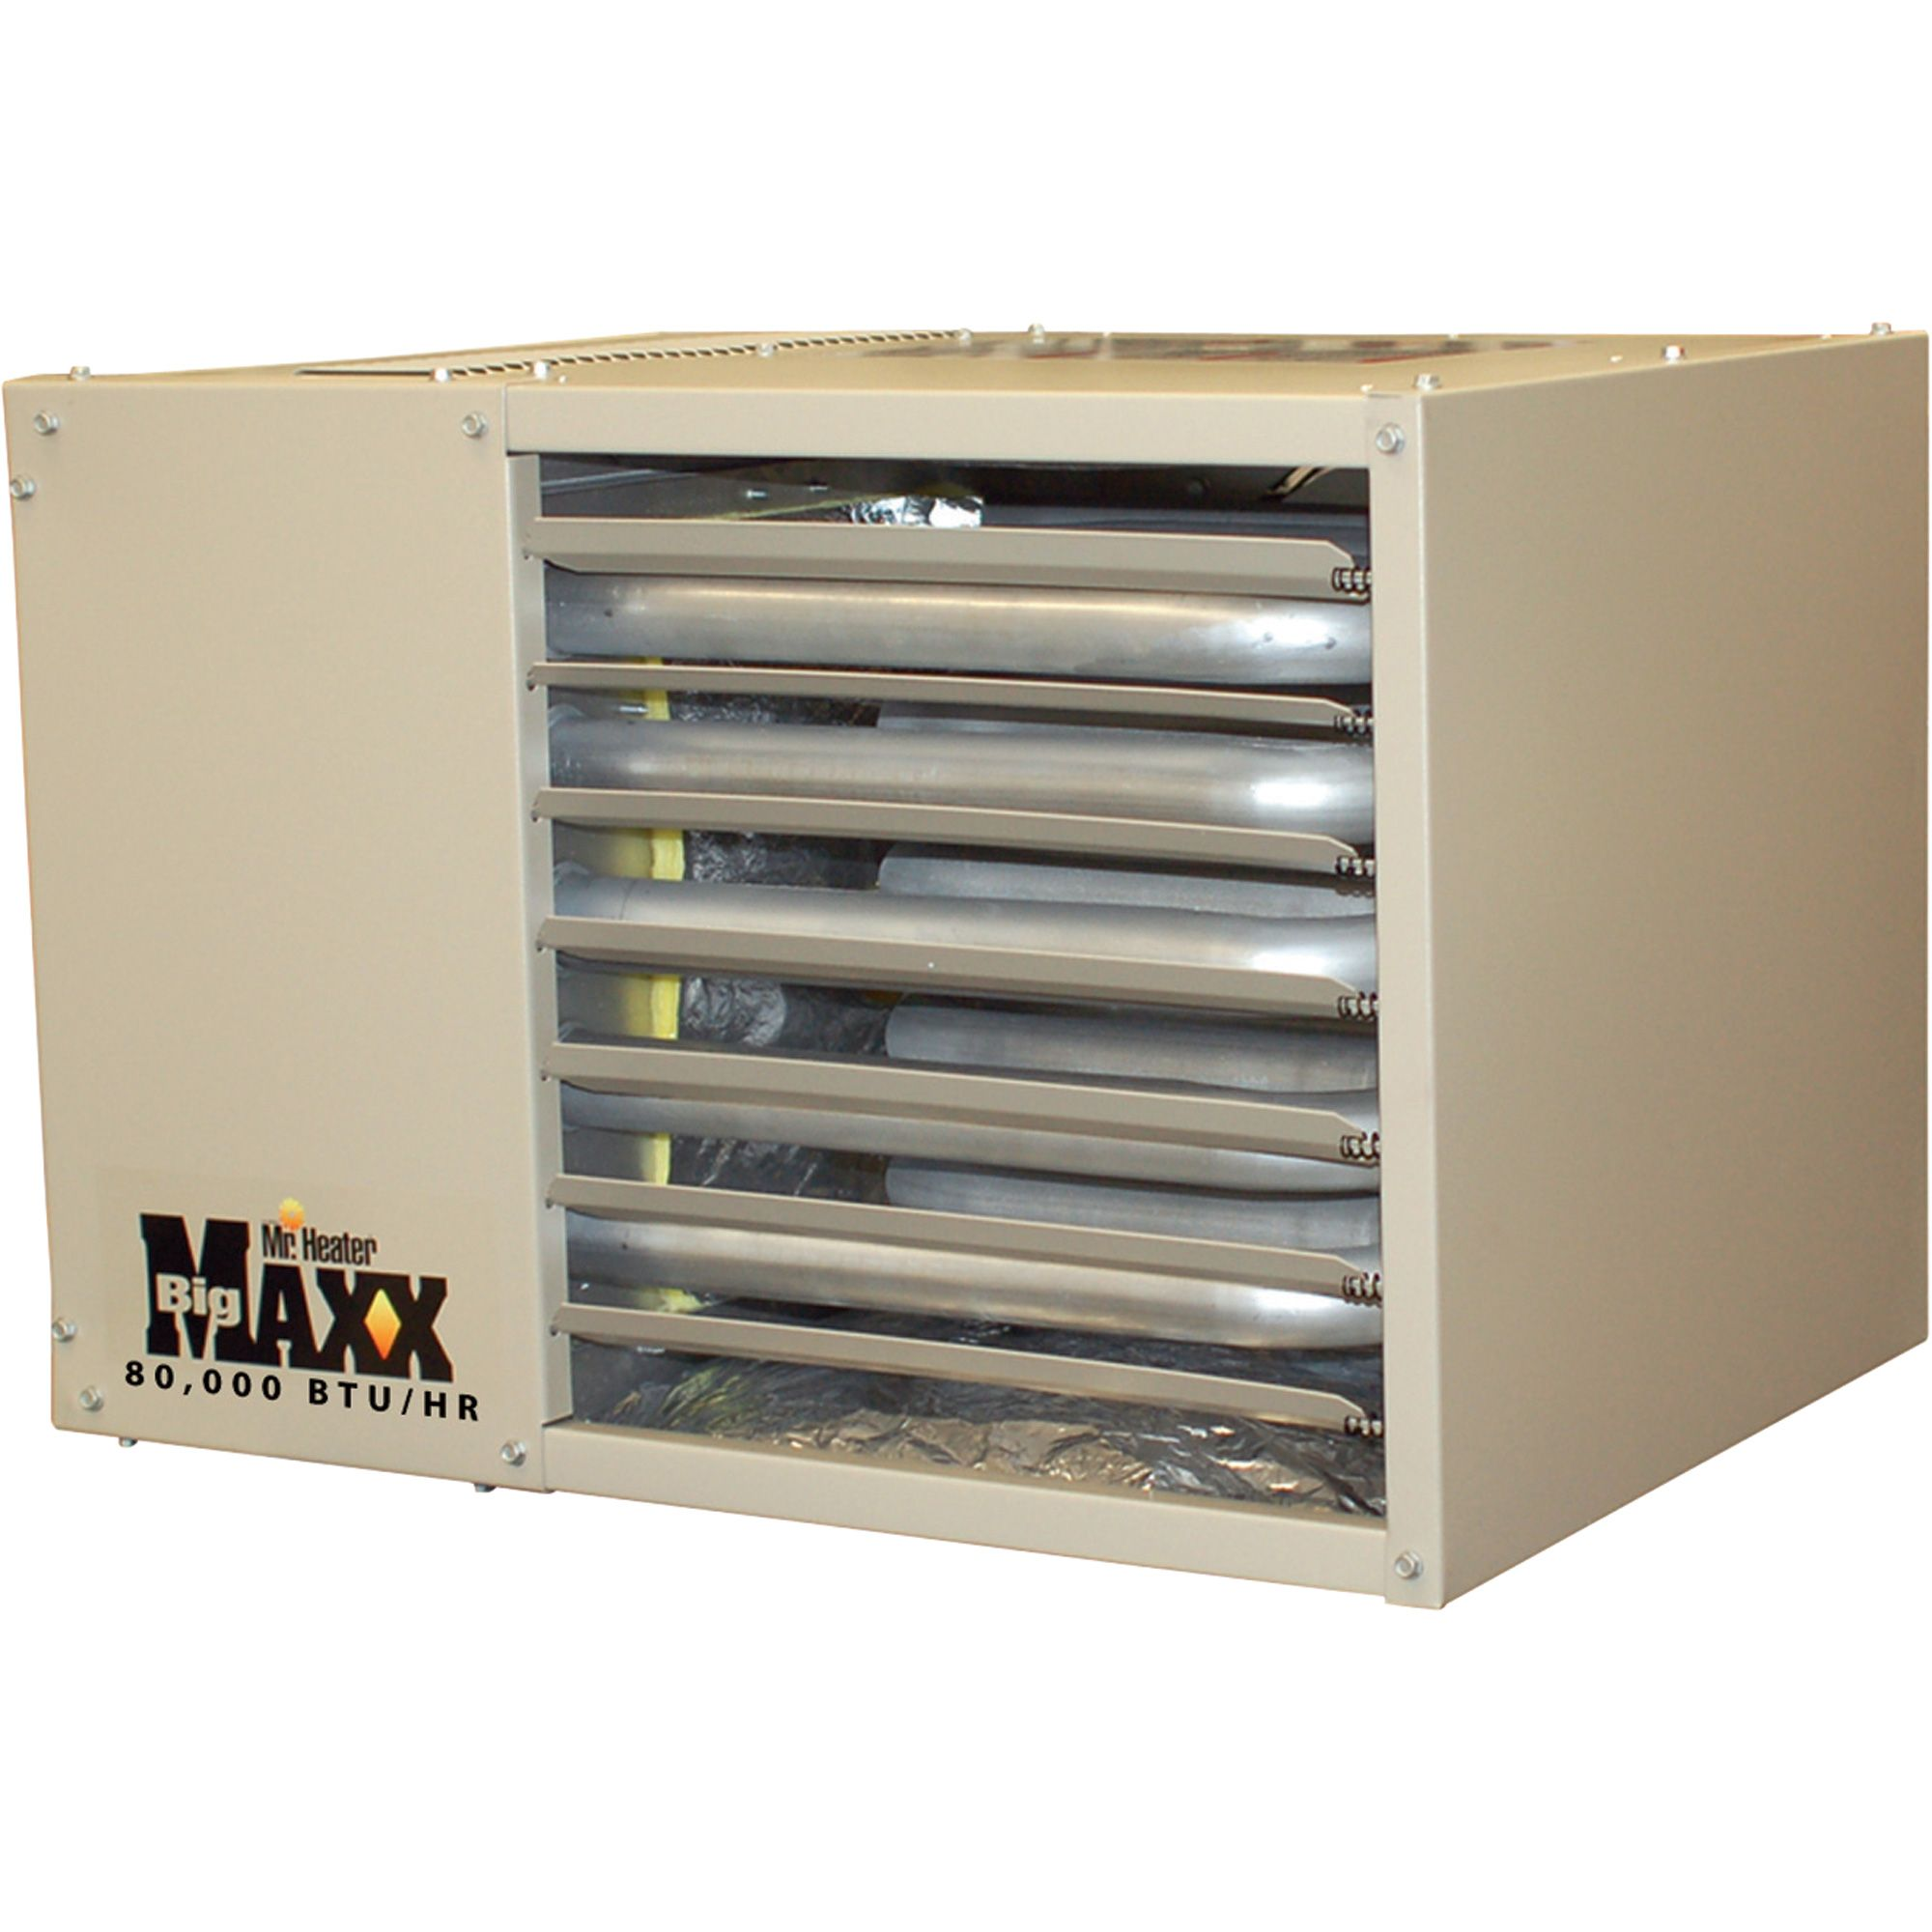 Mr. Heater Big Maxx™ Natural Gas Heater